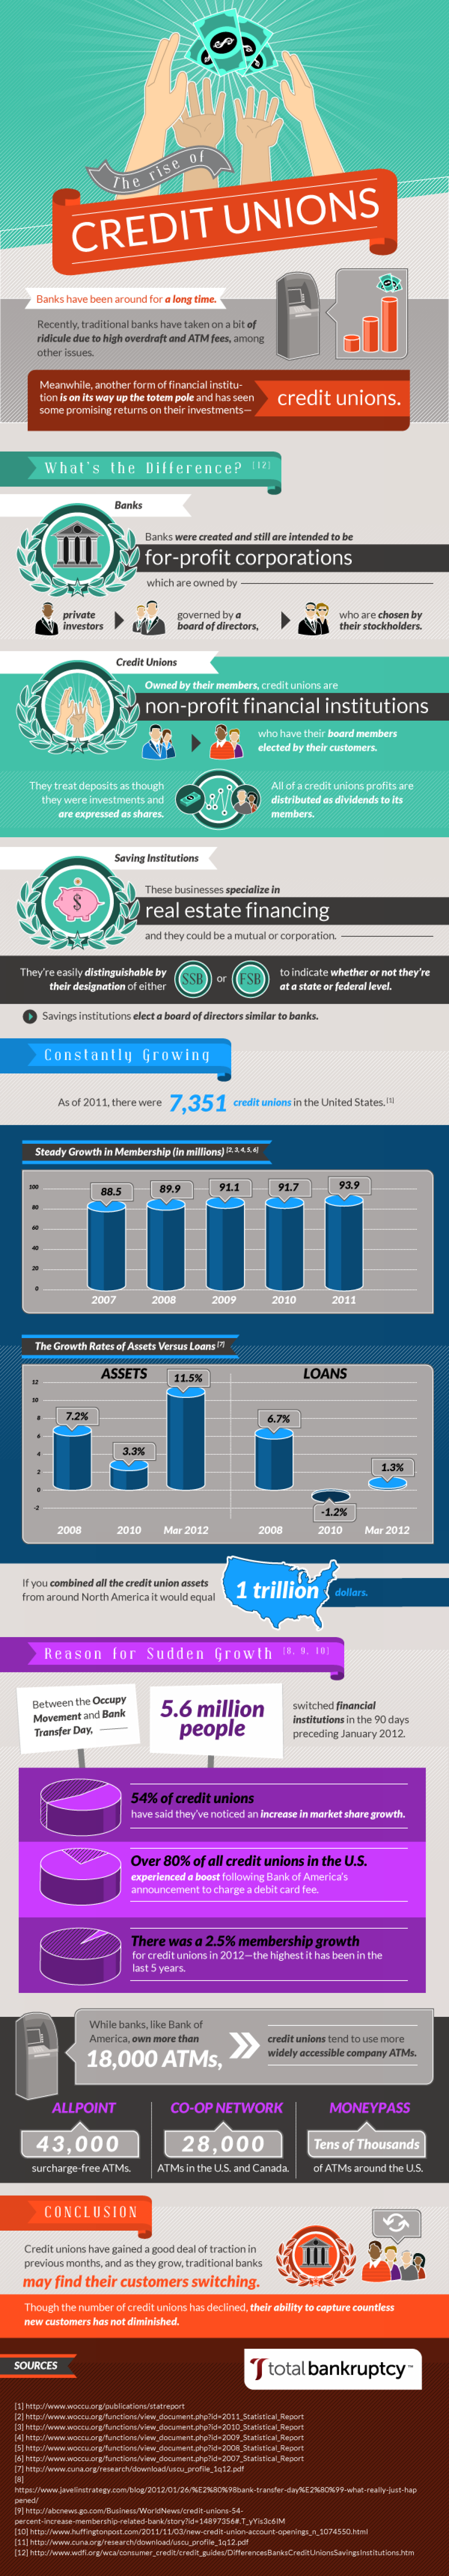 The Rise of Credit Unions Infographic